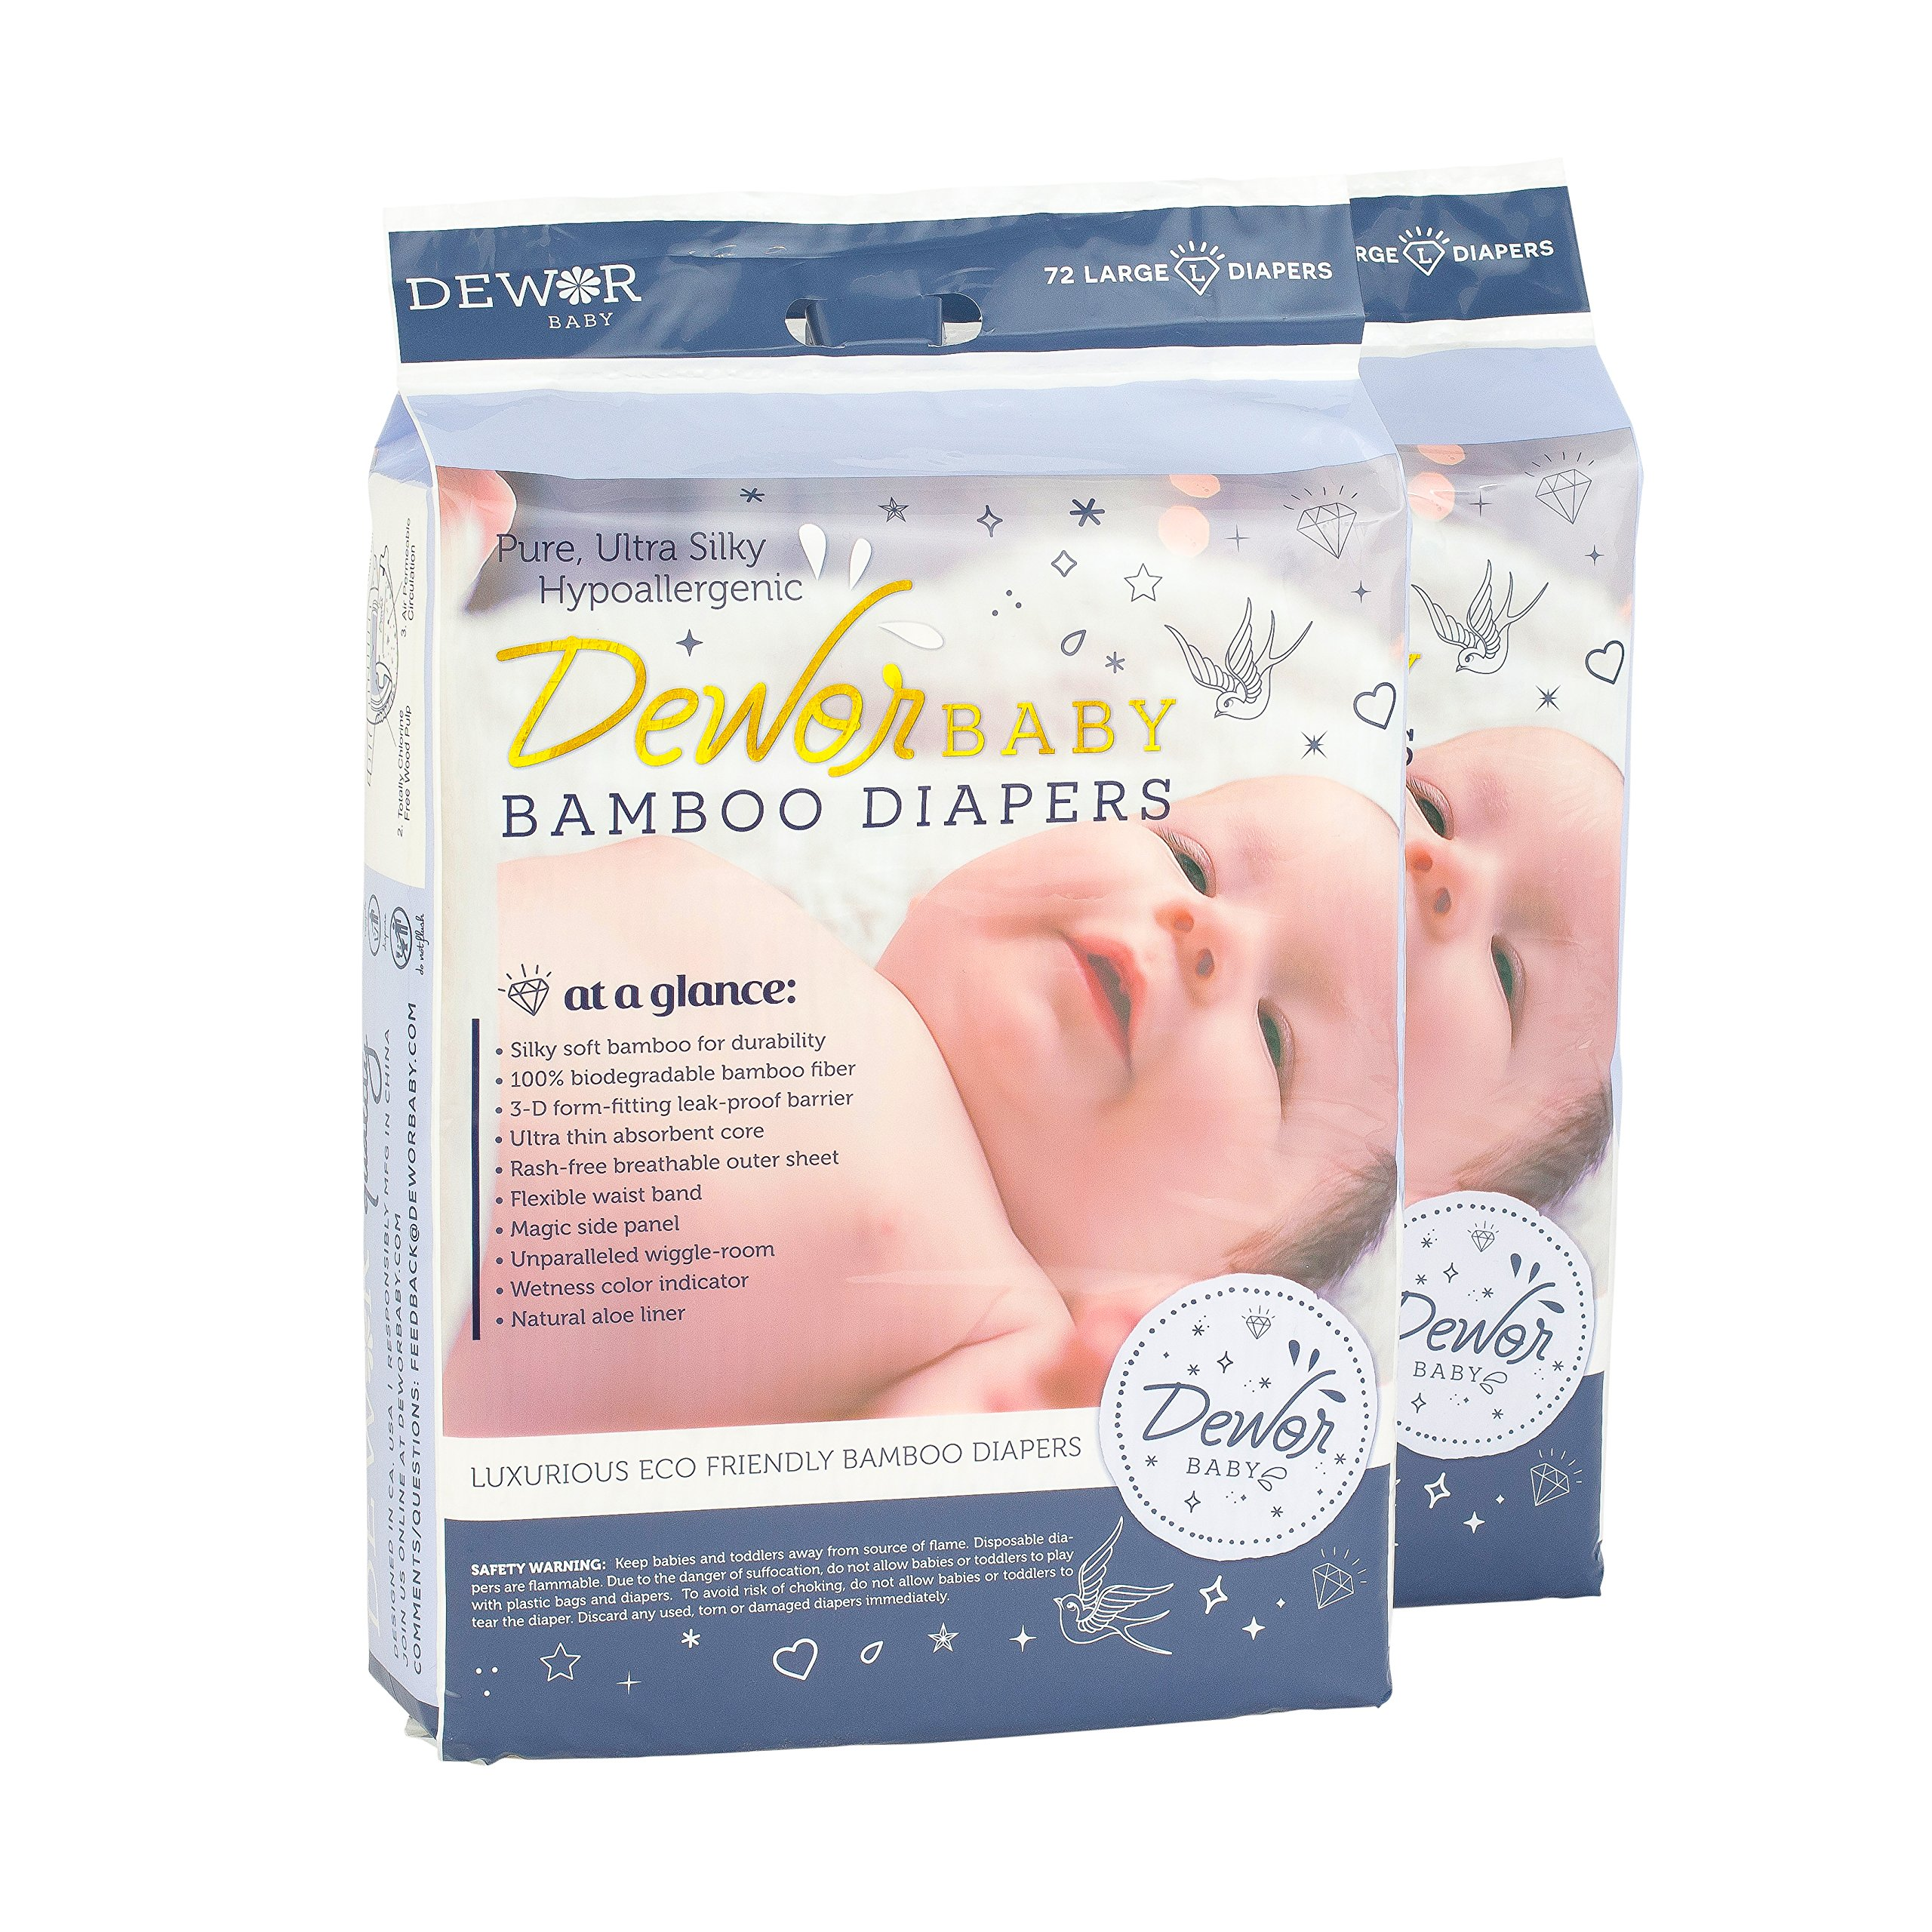 Dewor Baby Premium Bamboo Disposable Diapers, Large (20-31 lbs), 2 Pack,2x72 Count